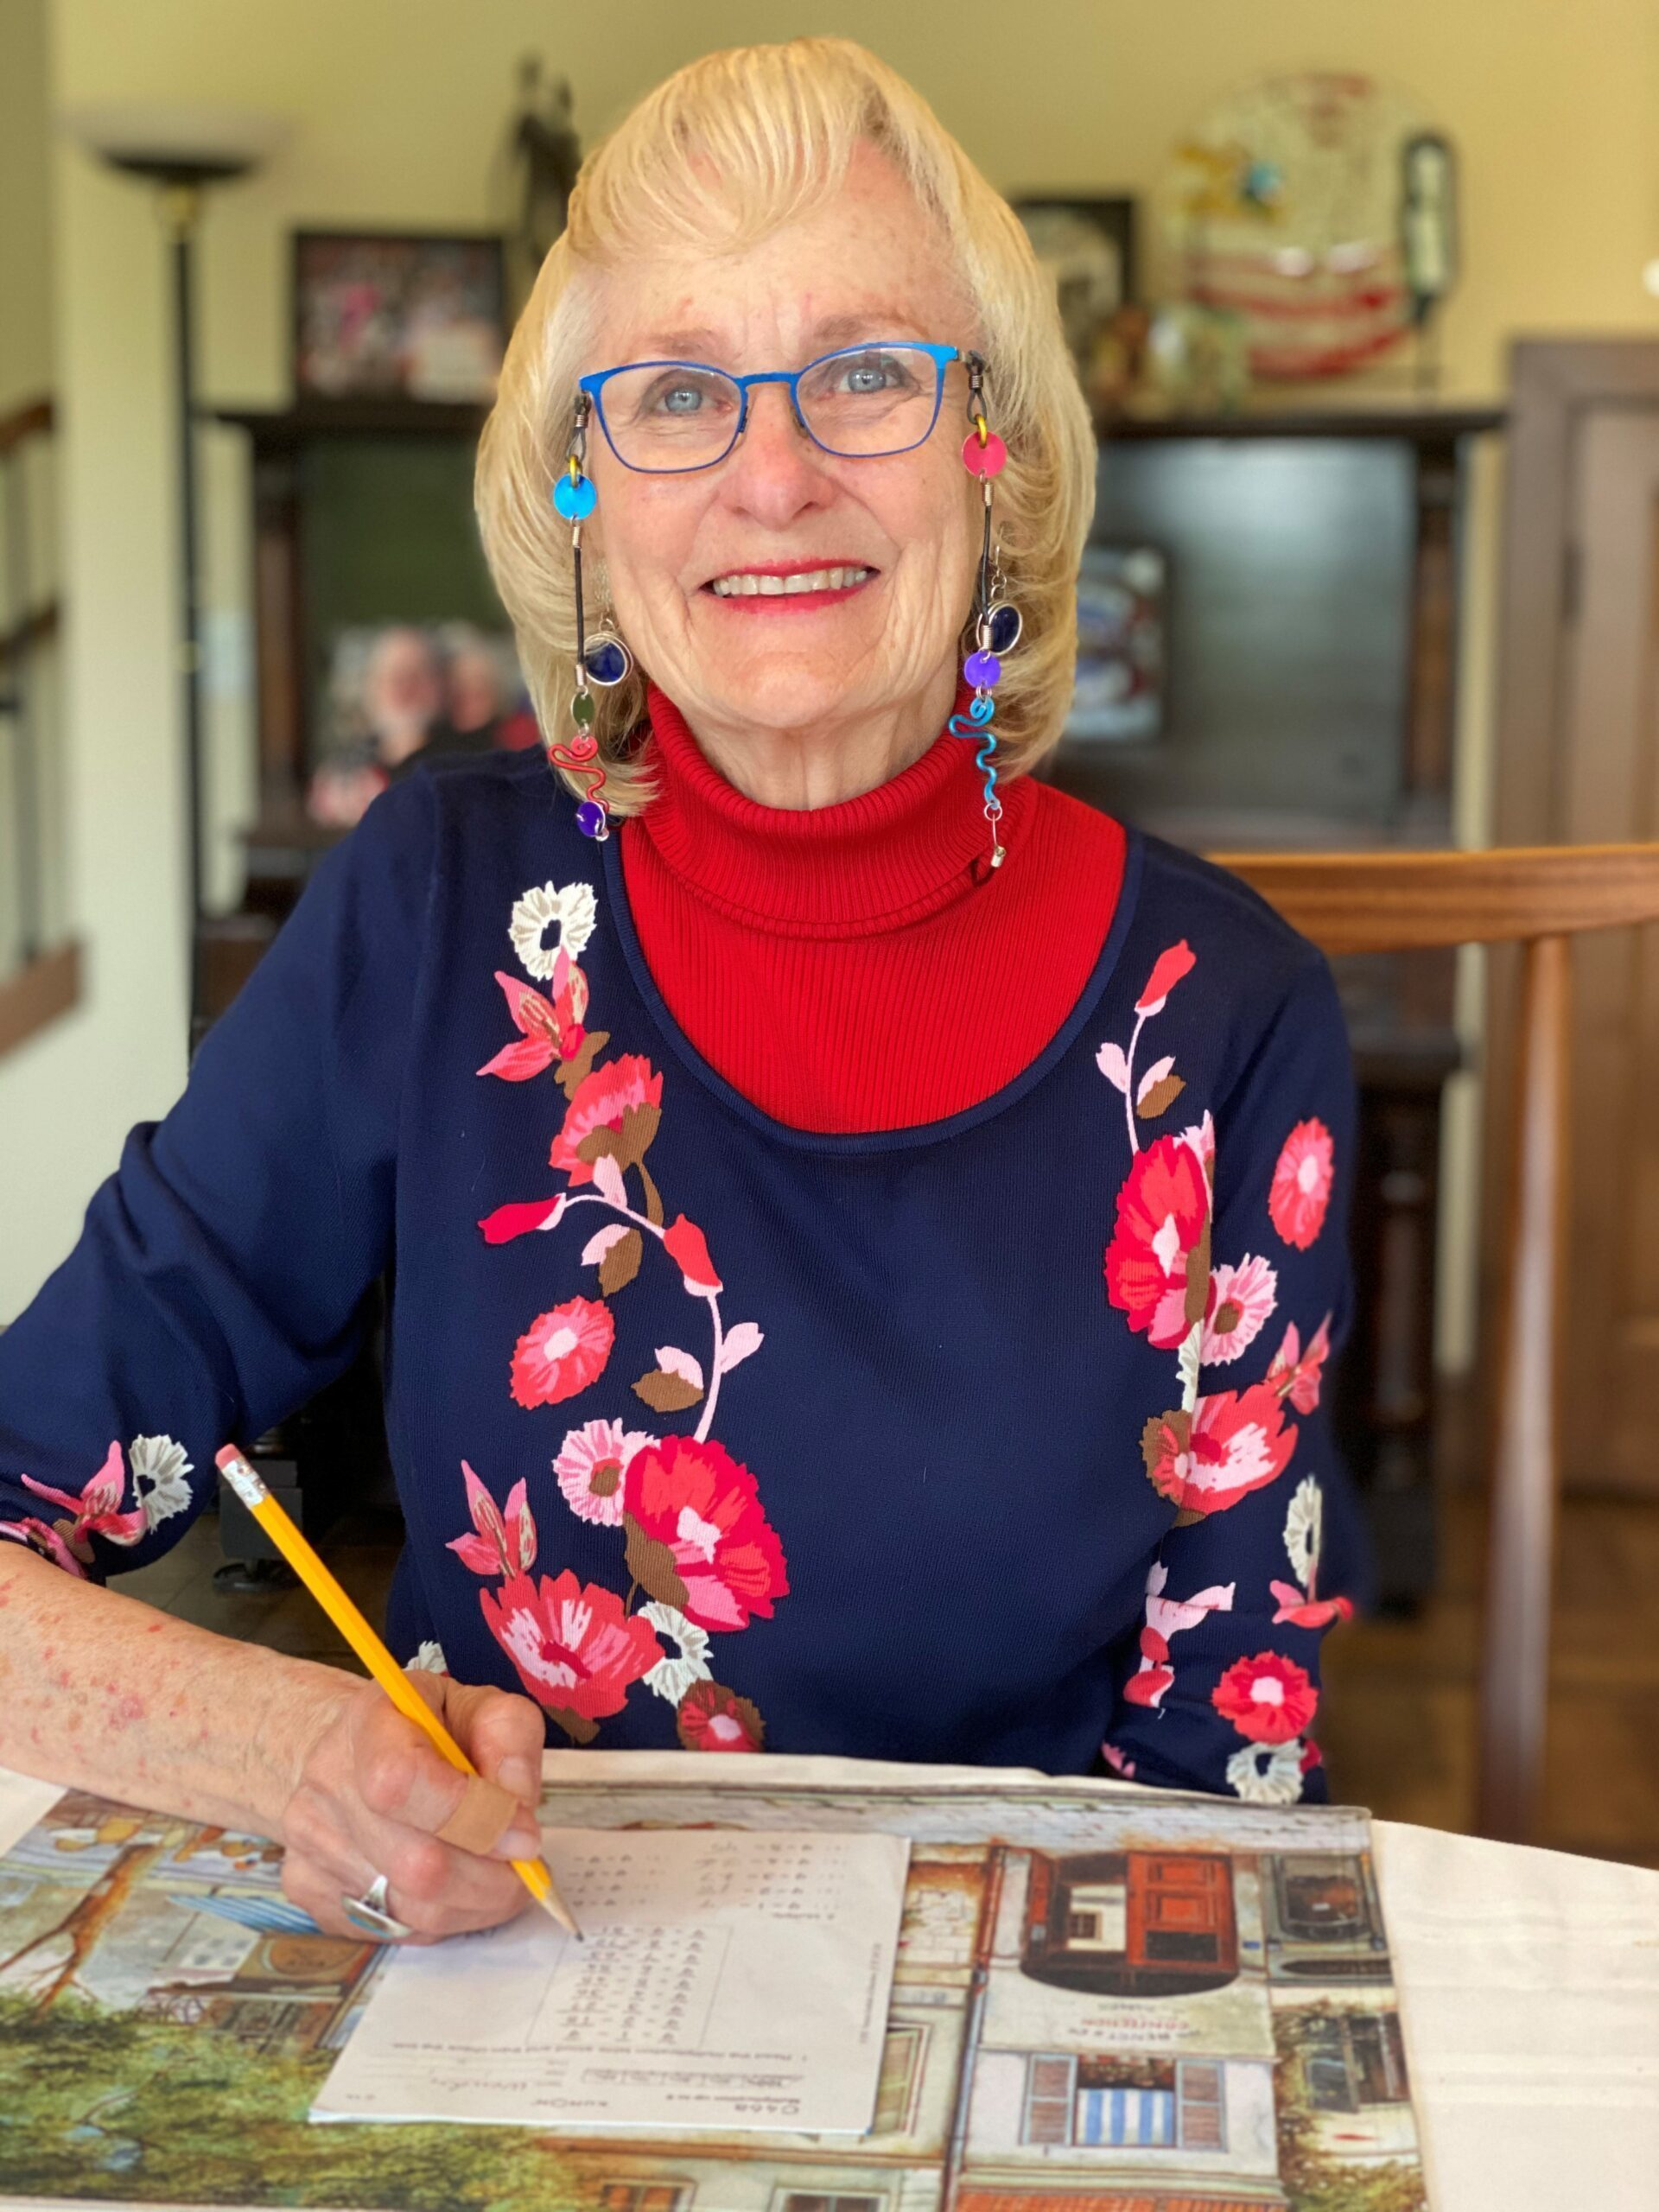 photo of an older woman in glasses. She is smiling as she works on a writing task